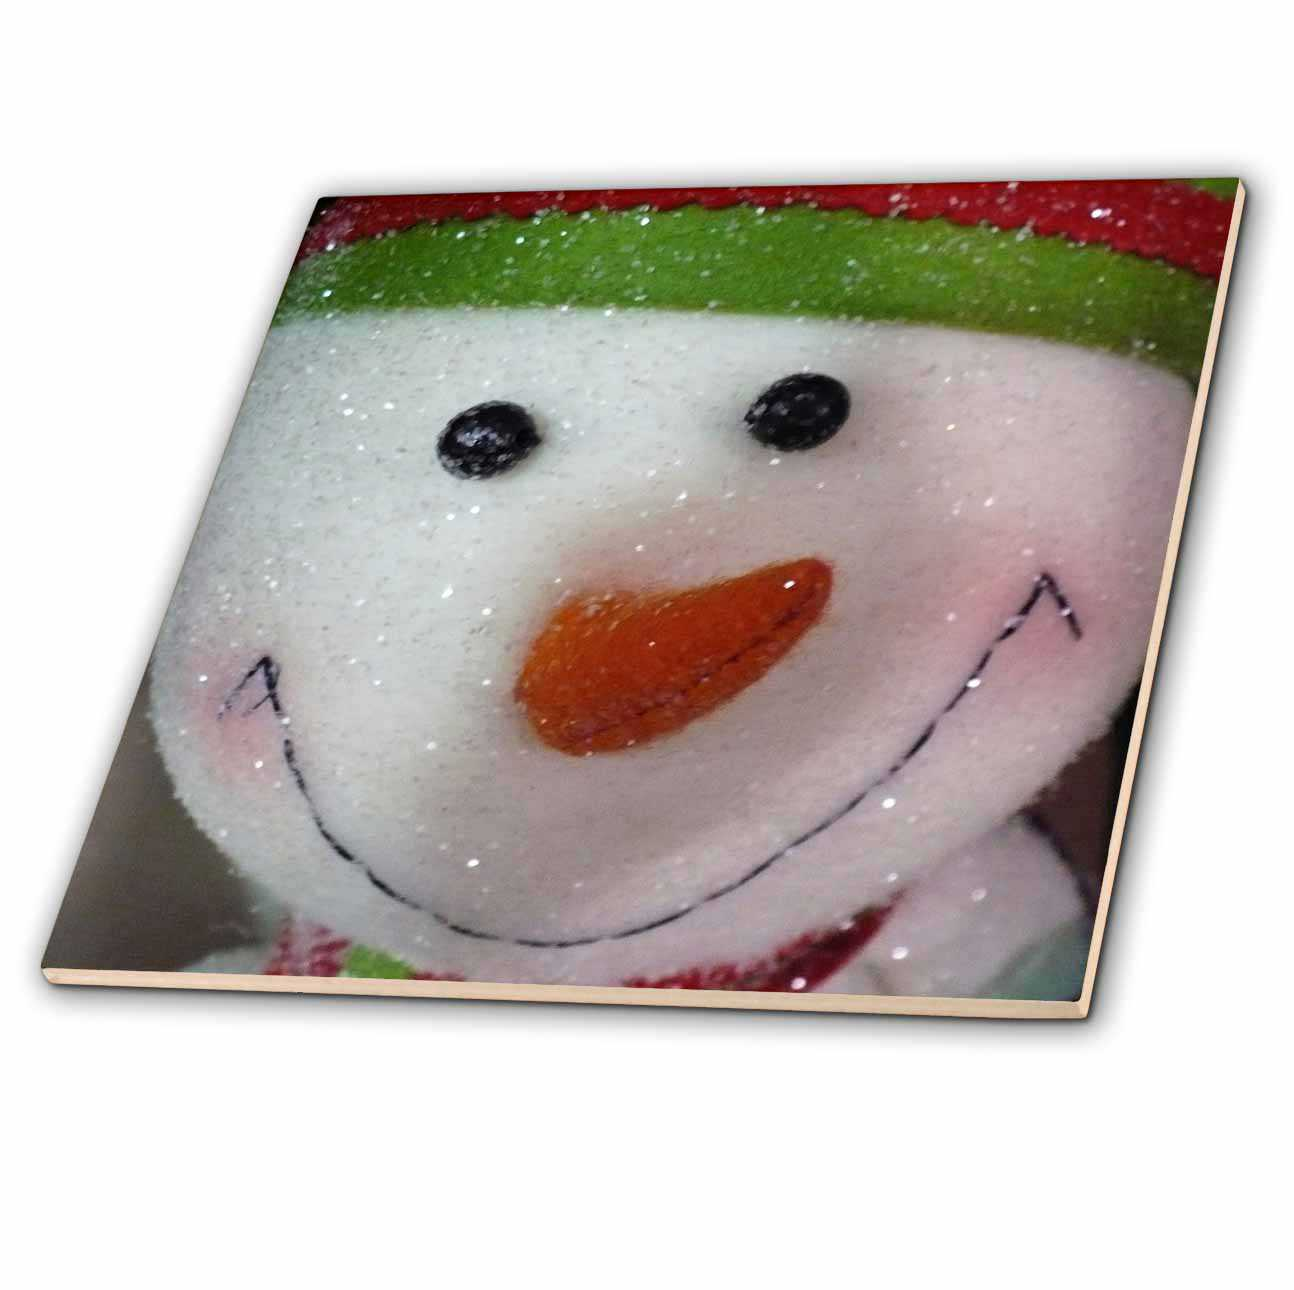 3dRose Happy Snowman - Ceramic Tile, 8-inch